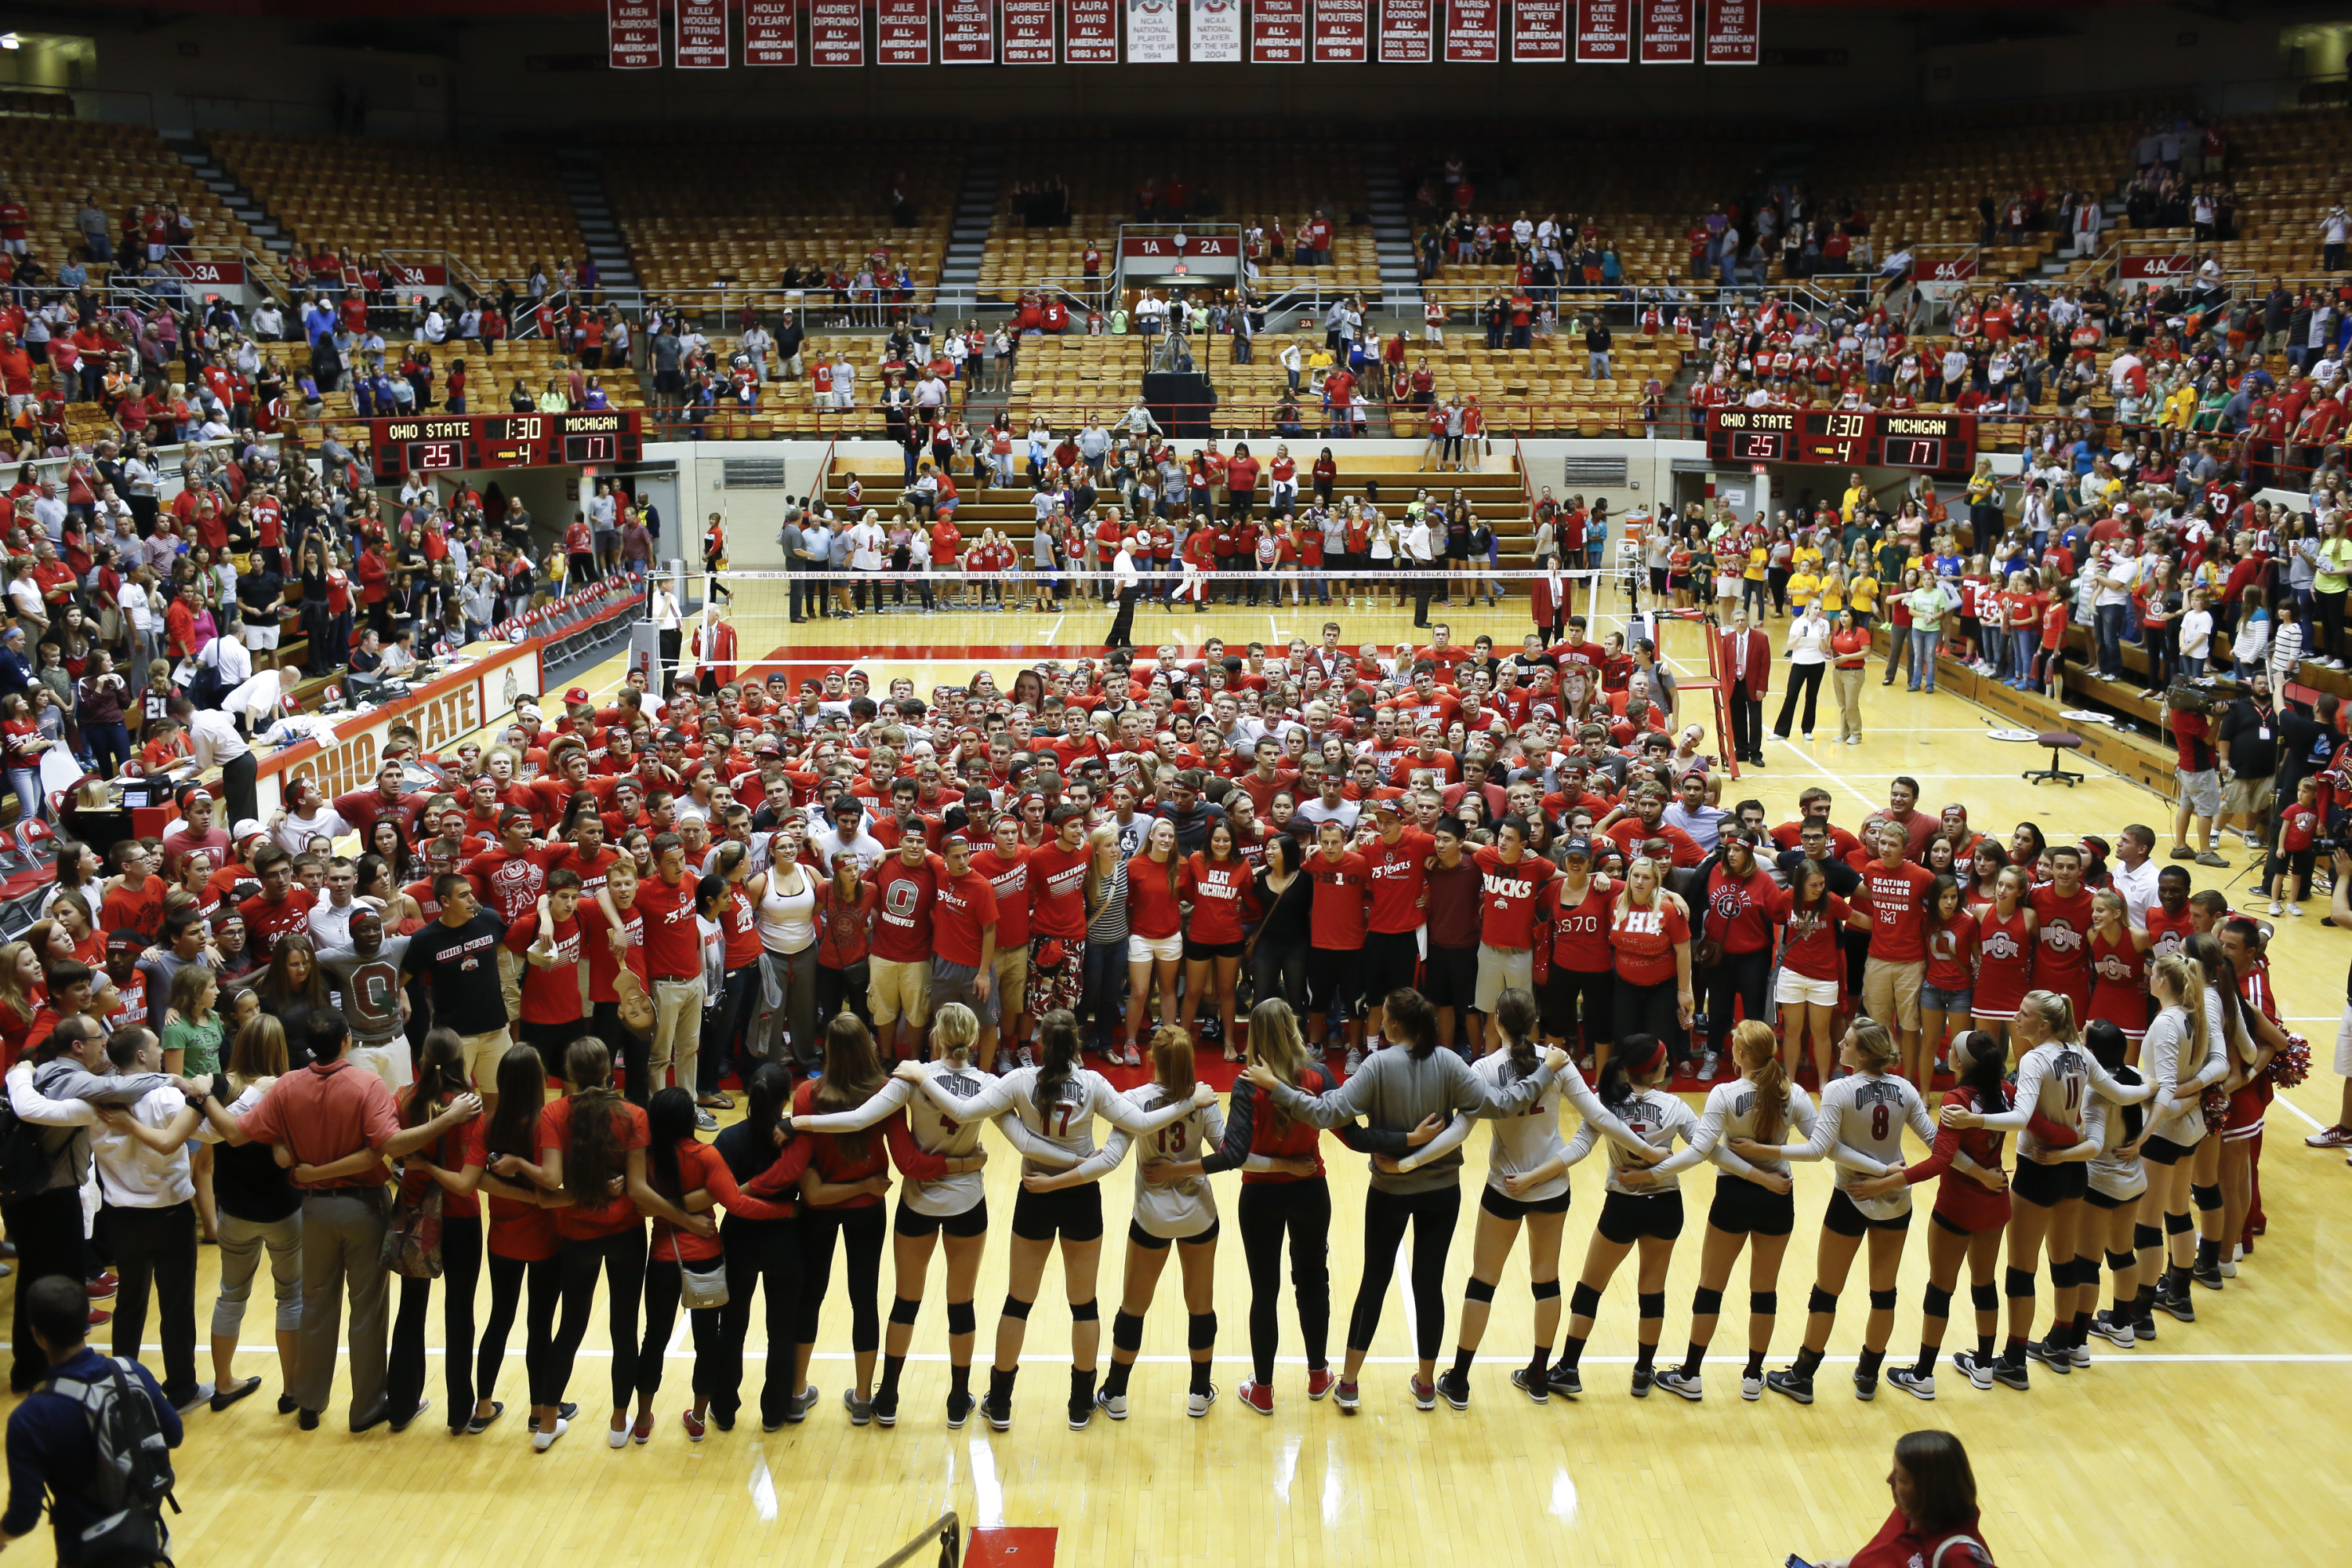 Ohio State vs Michigan Women's Volleyball at St. John Arena on Friday, September 27, 2013. OSU defeated Michigan 3 sets to 1.Team Celebration